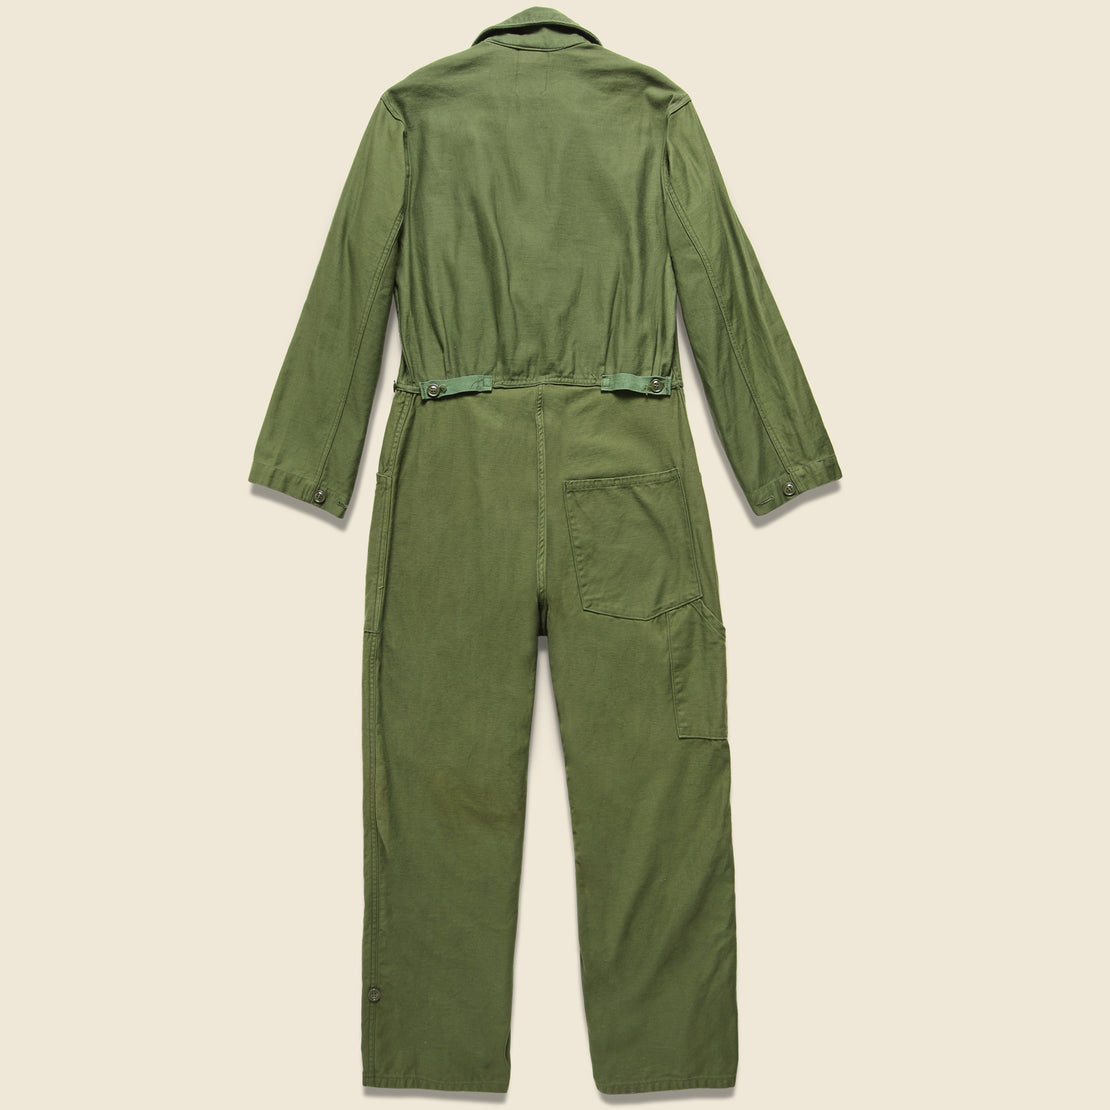 Floral Flourish Military Jumpsuit - Army Green